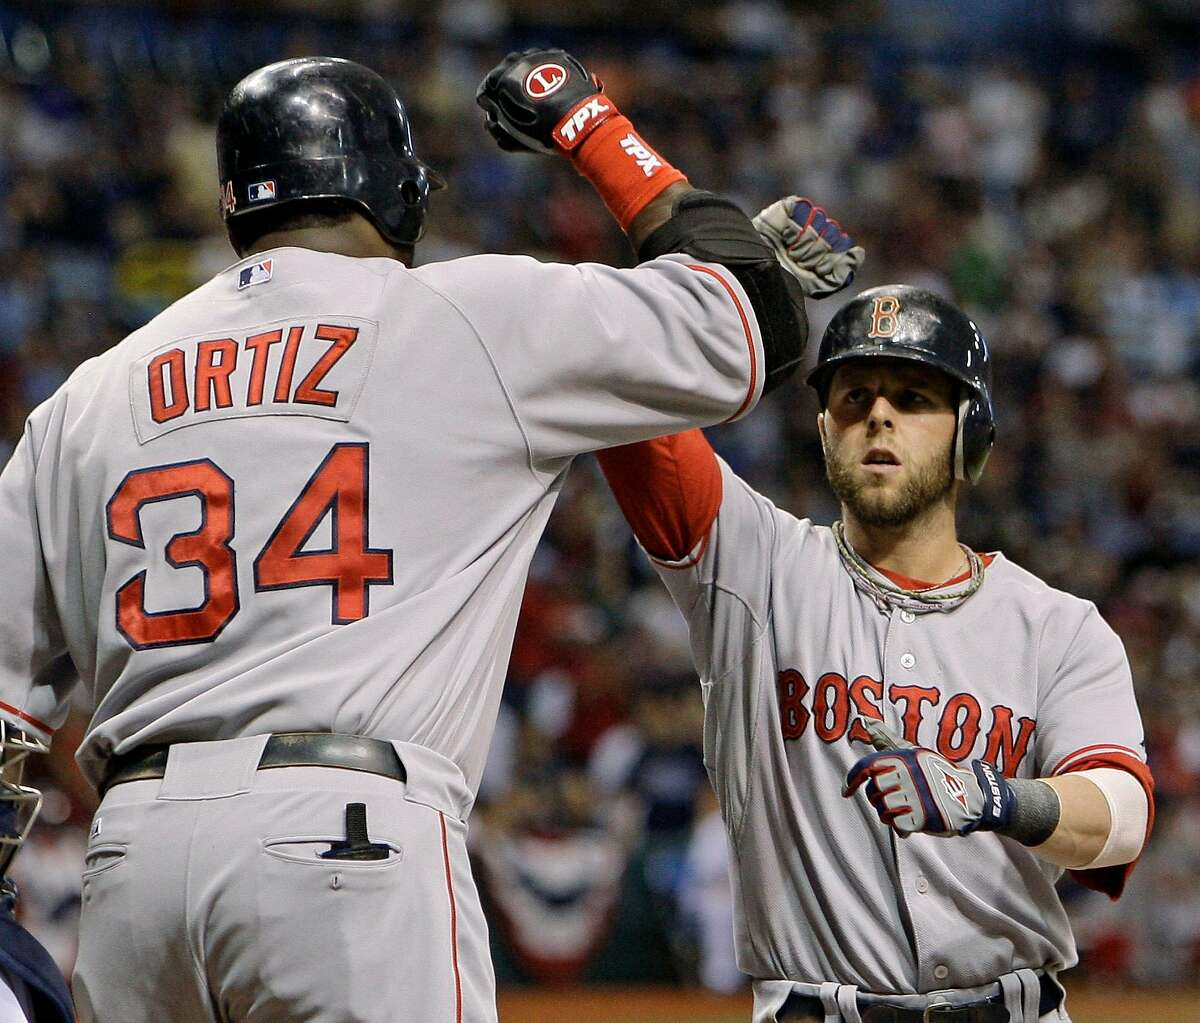 Boston Red Sox's Dustin Pedroia, right, is congratulated by teammate David Ortiz after hitting a solo home run against Tampa Bay Rays starting pitcher Matt Garza in the first inning of Game 7 of the American League baseball championship series in St. Petersburg, Fla., Sunday, Oct. 19, 2008. (AP Photo/Chris O'Meara)